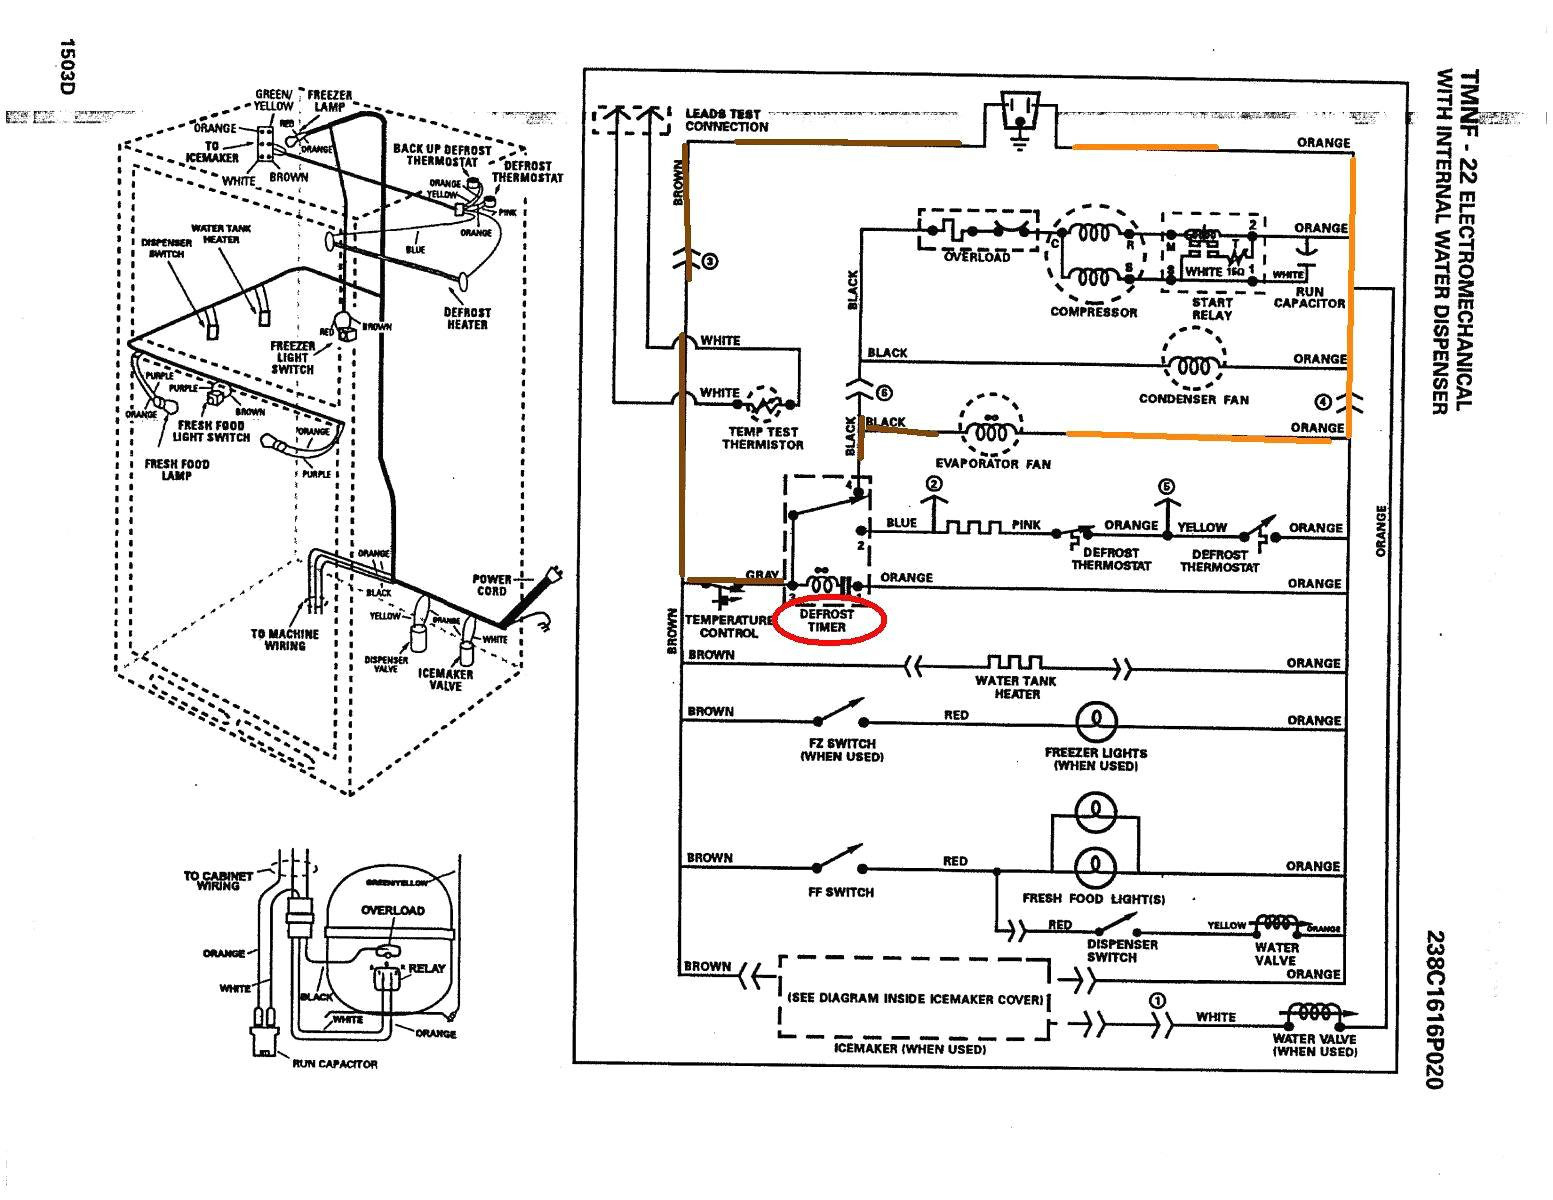 Ge Profile Refrigerator Wiring Schematic - Wiring Diagrams Show on